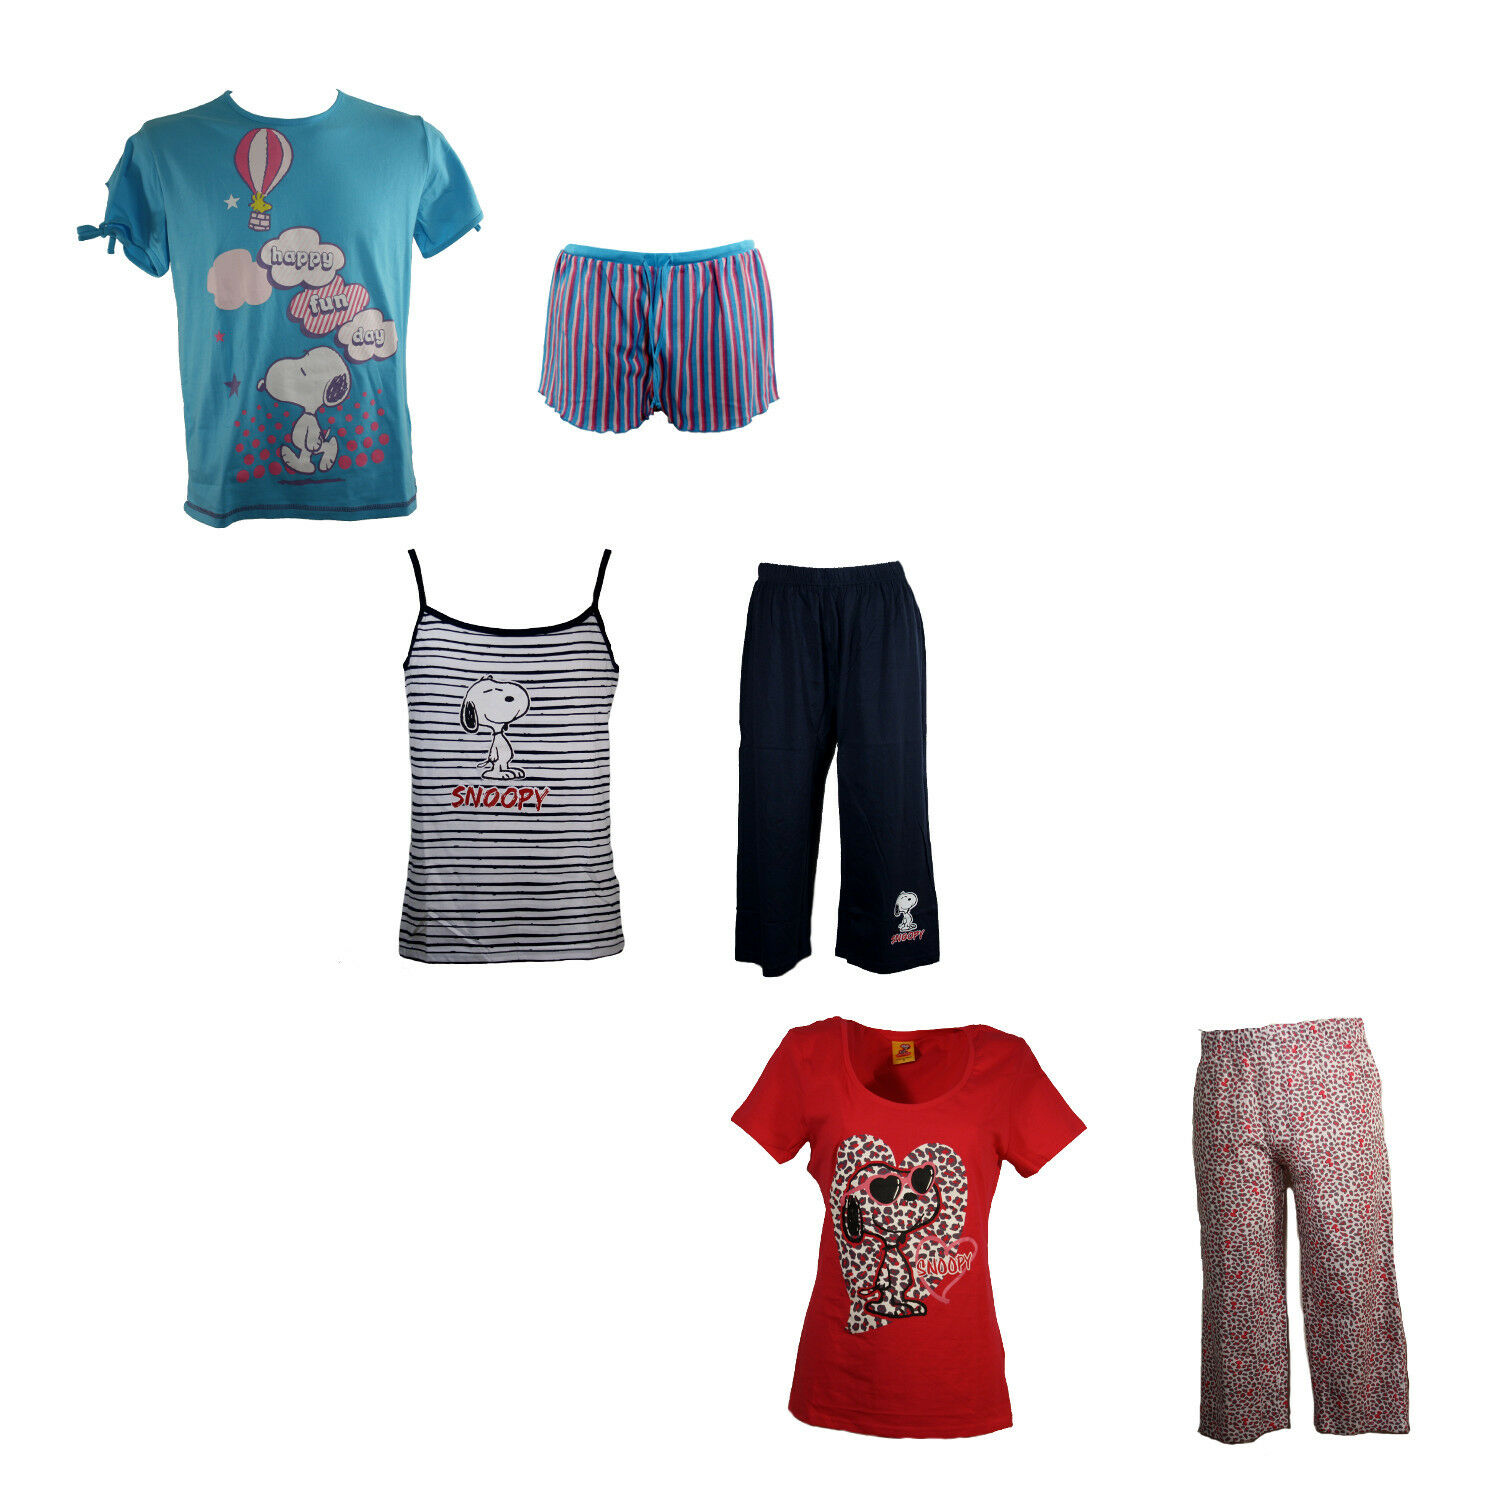 damen snoopy tweety betty boop schlafanzug pyjama. Black Bedroom Furniture Sets. Home Design Ideas